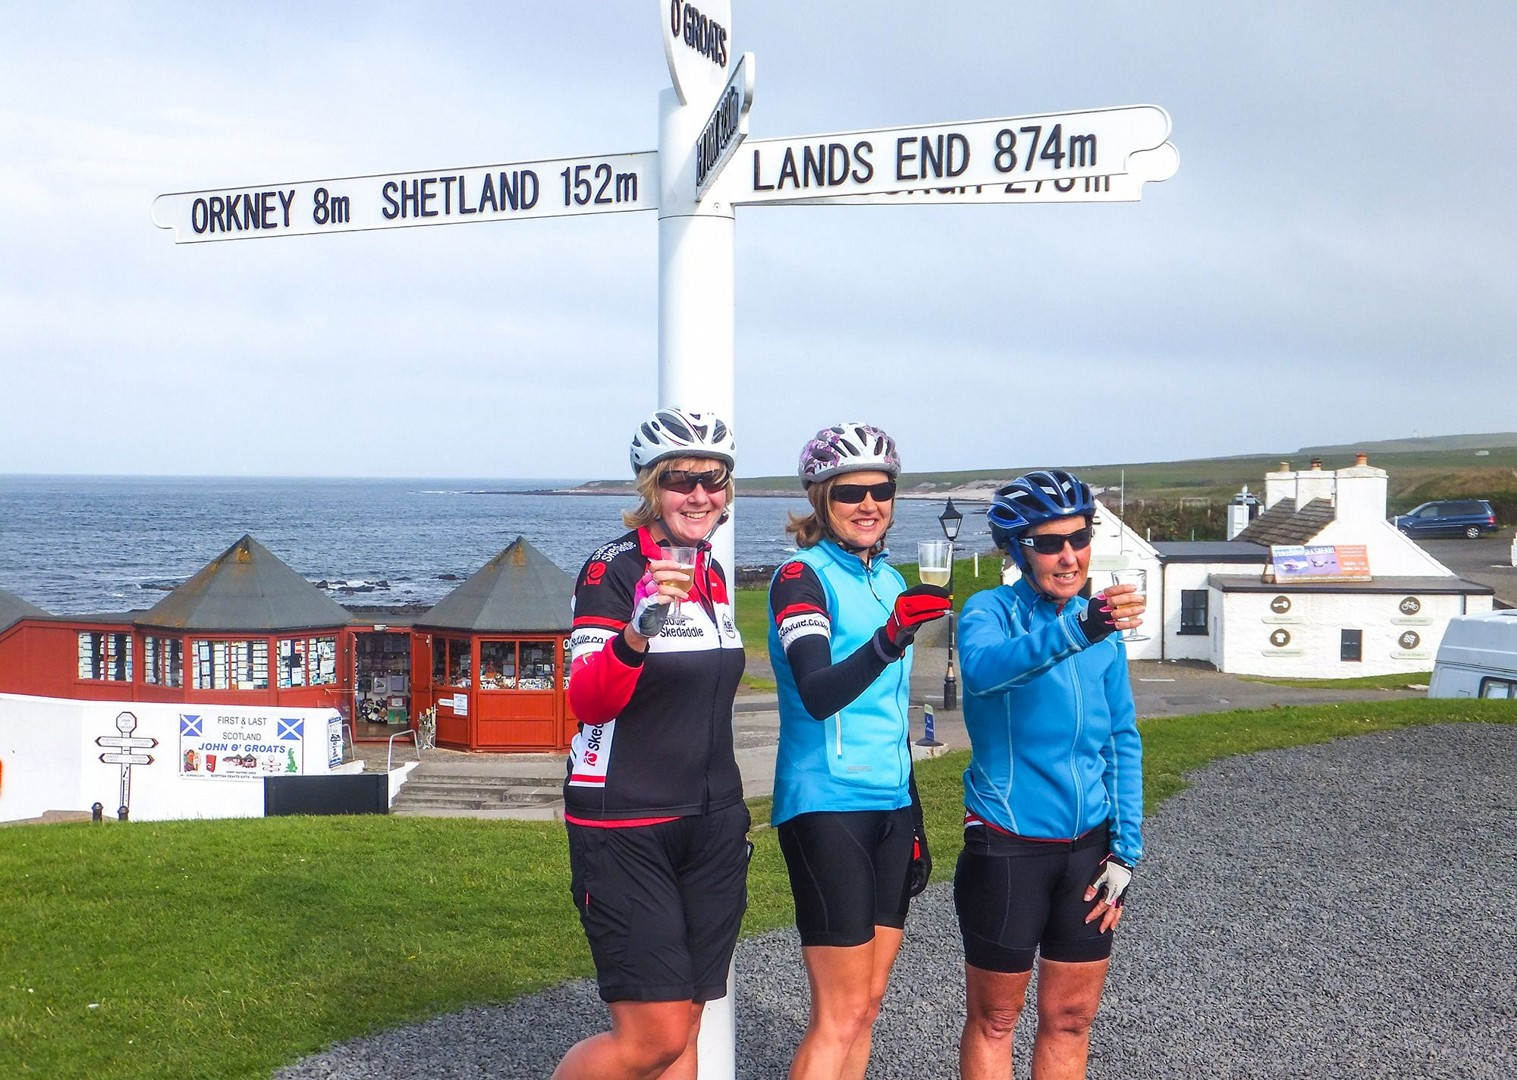 lands-end-to-john-ogroats-explorer-22-days-guided-cycling-holiday.jpg - UK - Land's End to John O'Groats Explorer (22 days) - Guided Cycling Holiday - Road Cycling